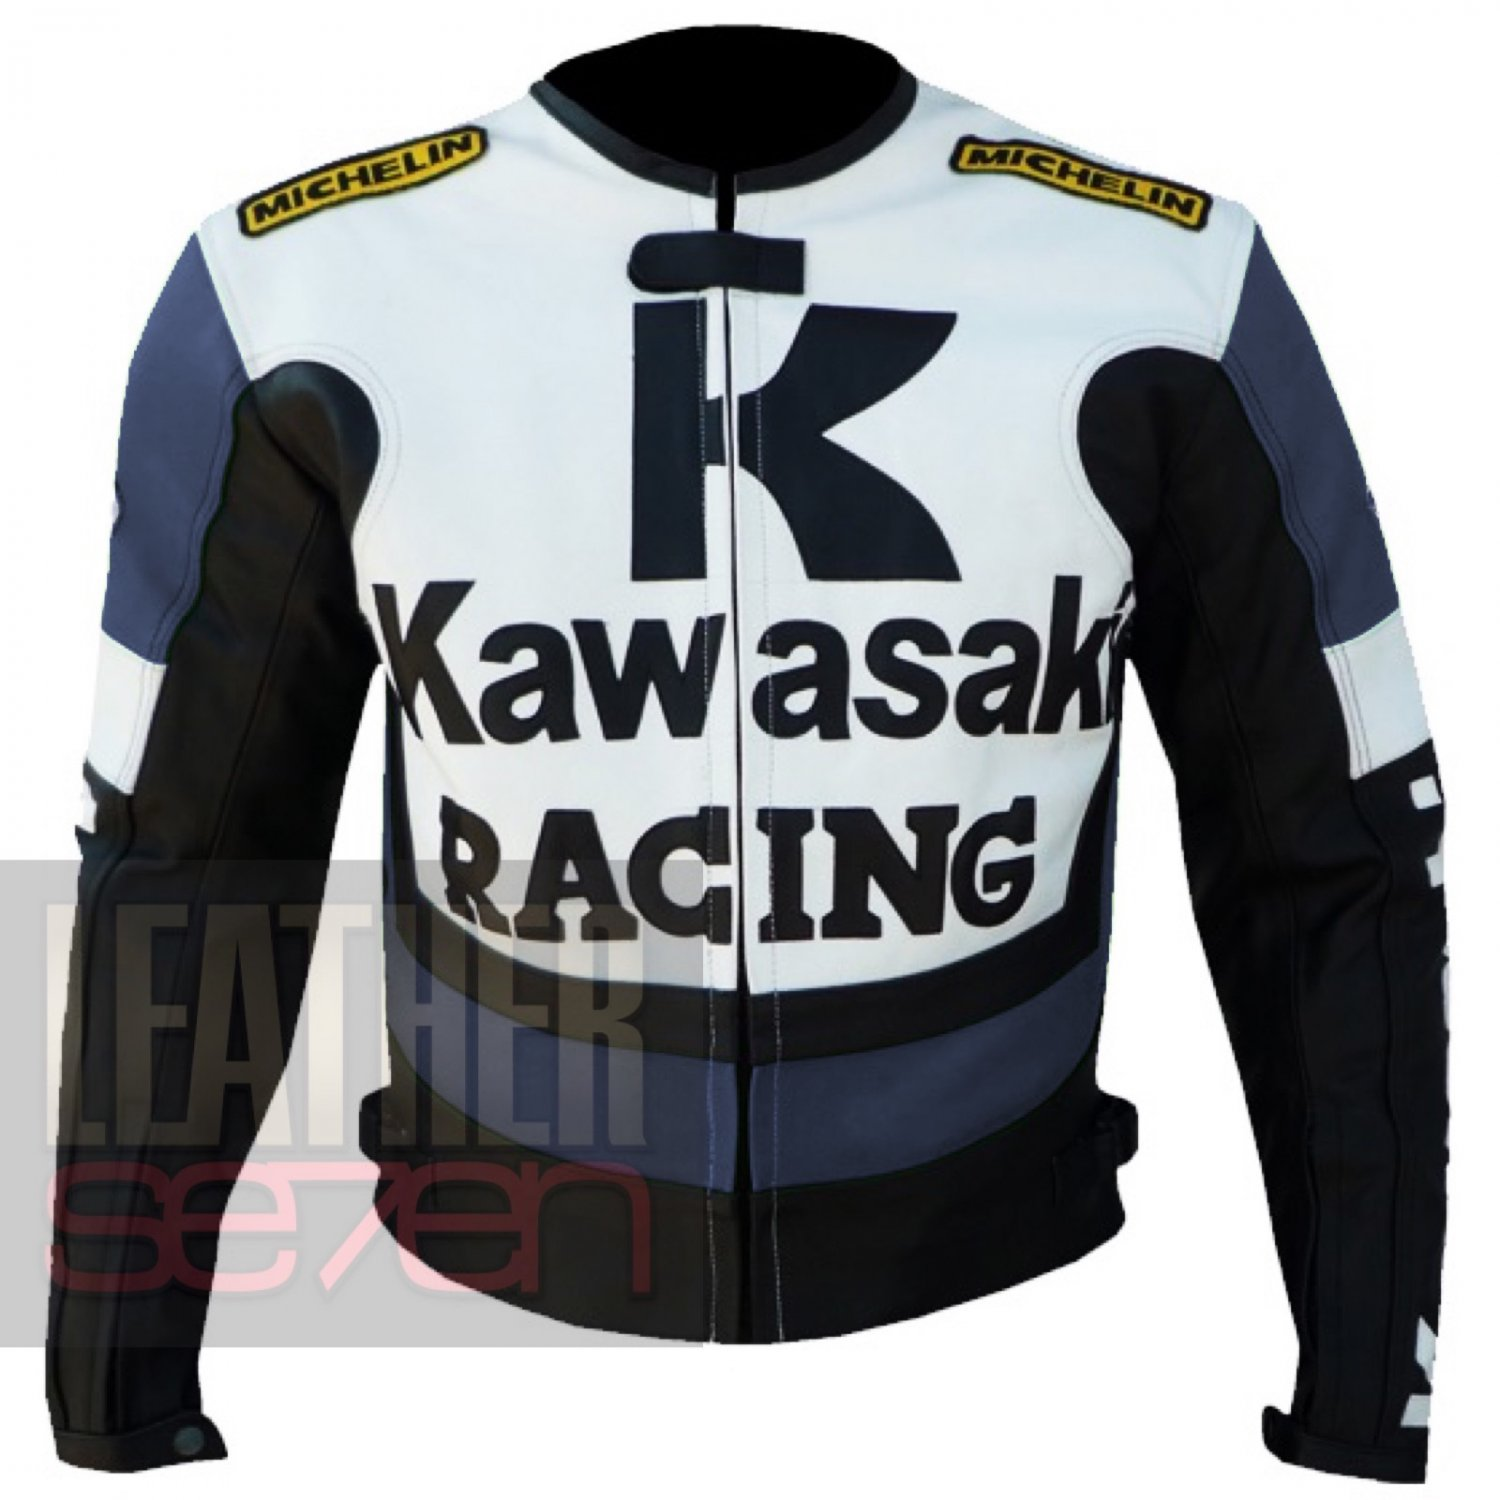 Best Quality Textile Racing Jackets For Bikers .. Kawasaki 1 Navy Blue Coat